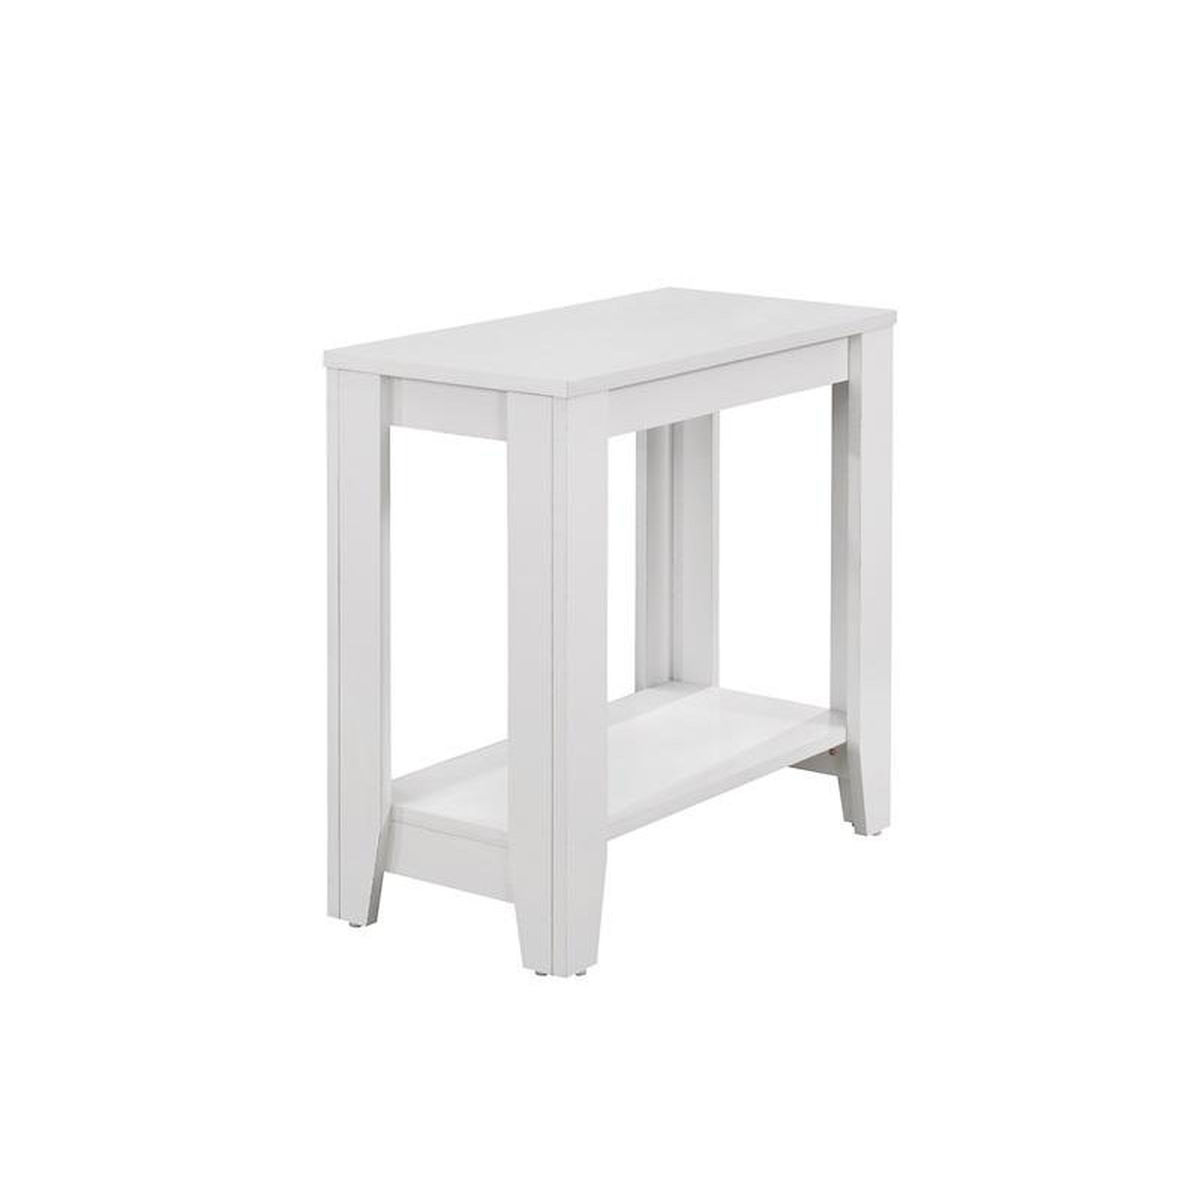 white accent side table bizchair monarch specialties msp main wood our modern solid with tapered legs matching bedside tables and chest drawers koncept lighting restoration